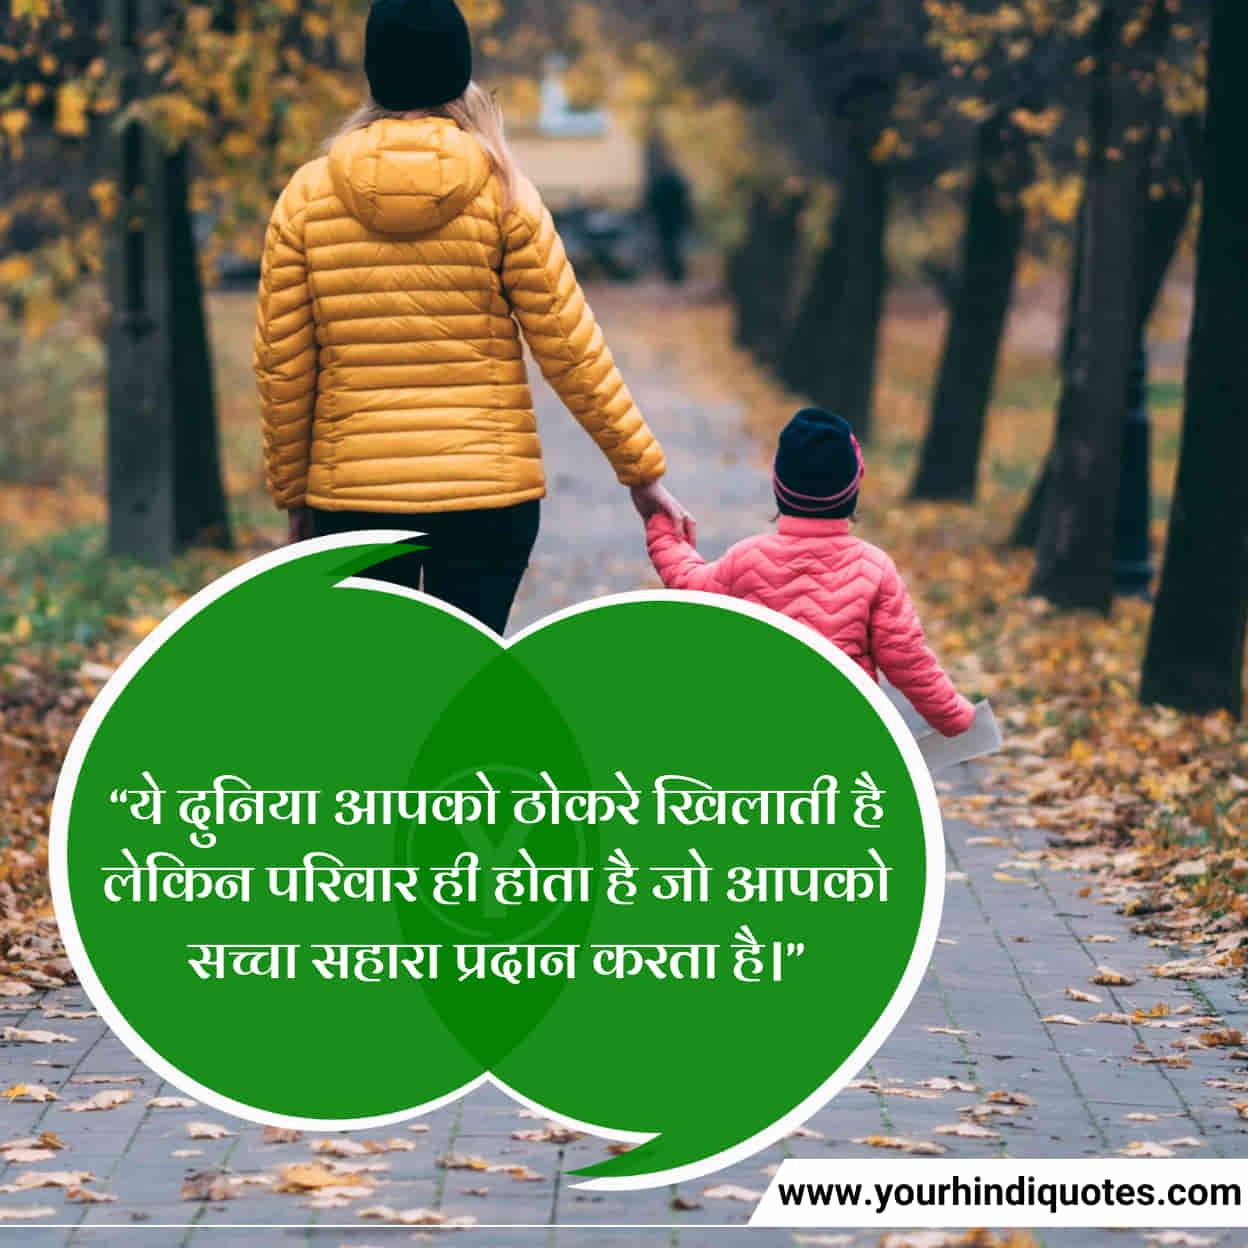 Love Family Quotes In Hindi